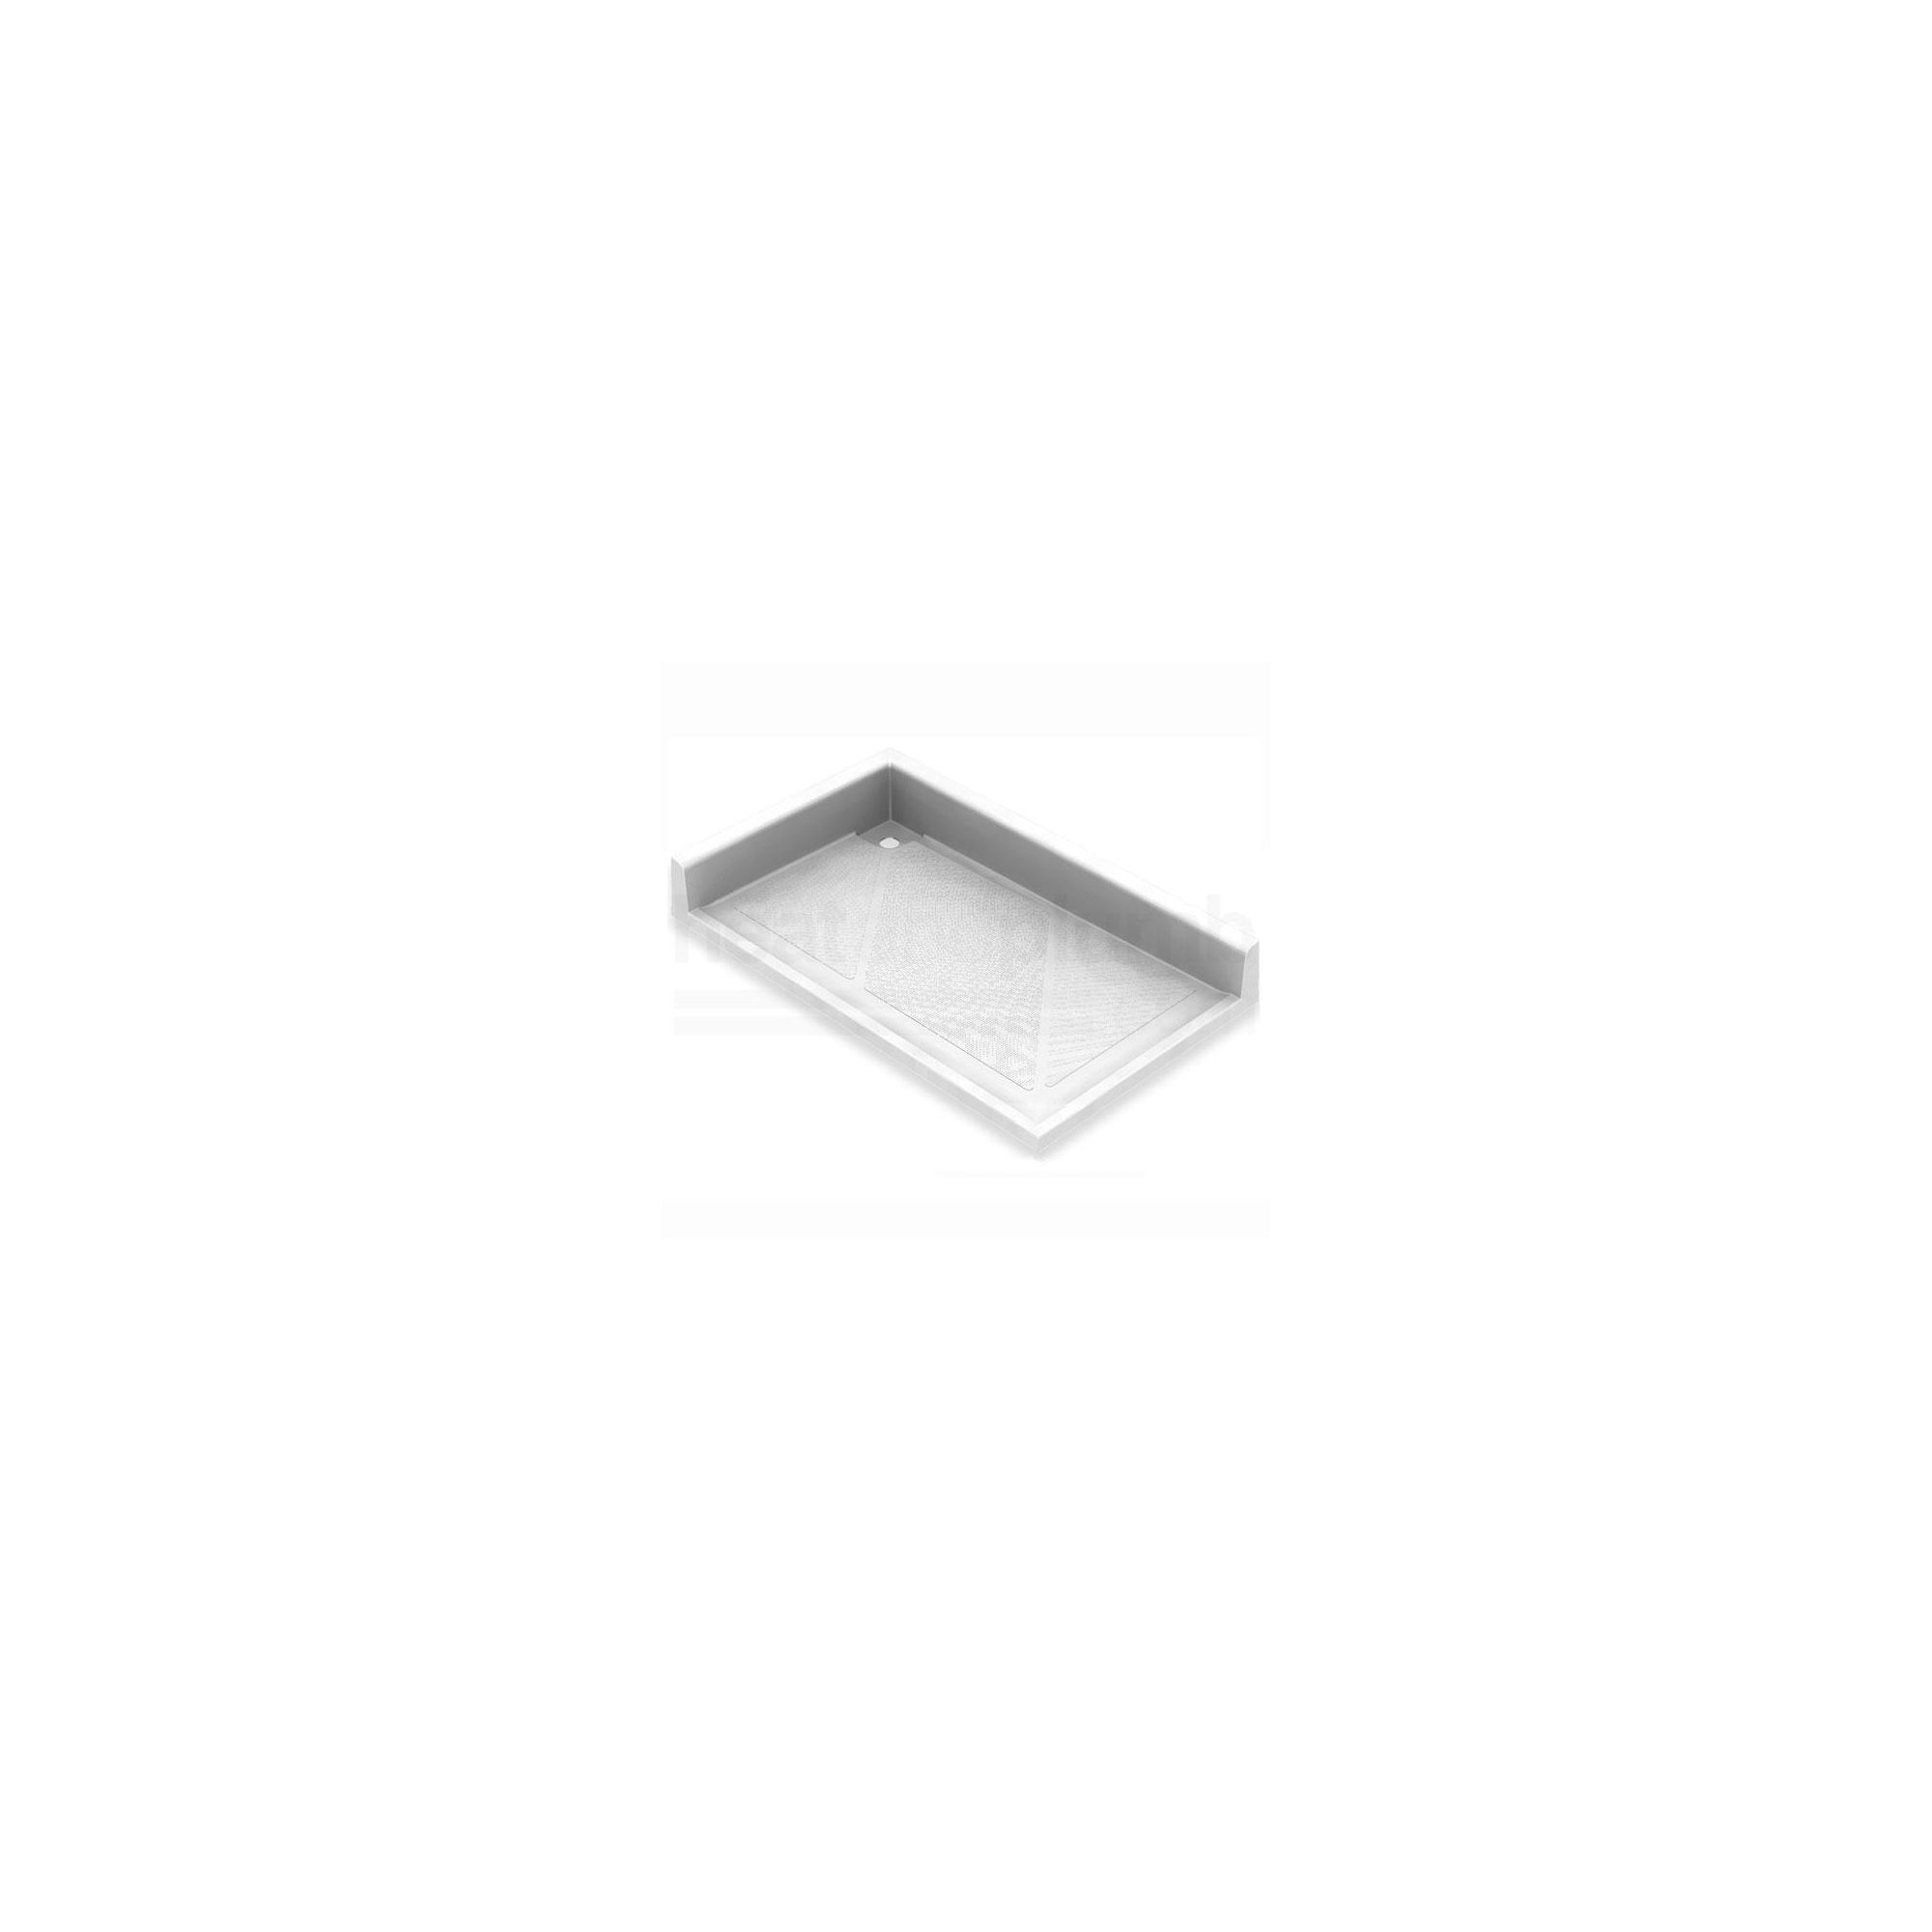 AKW Multi Spec Rectangular Shower Tray 1470mm x 750mm at Tesco Direct